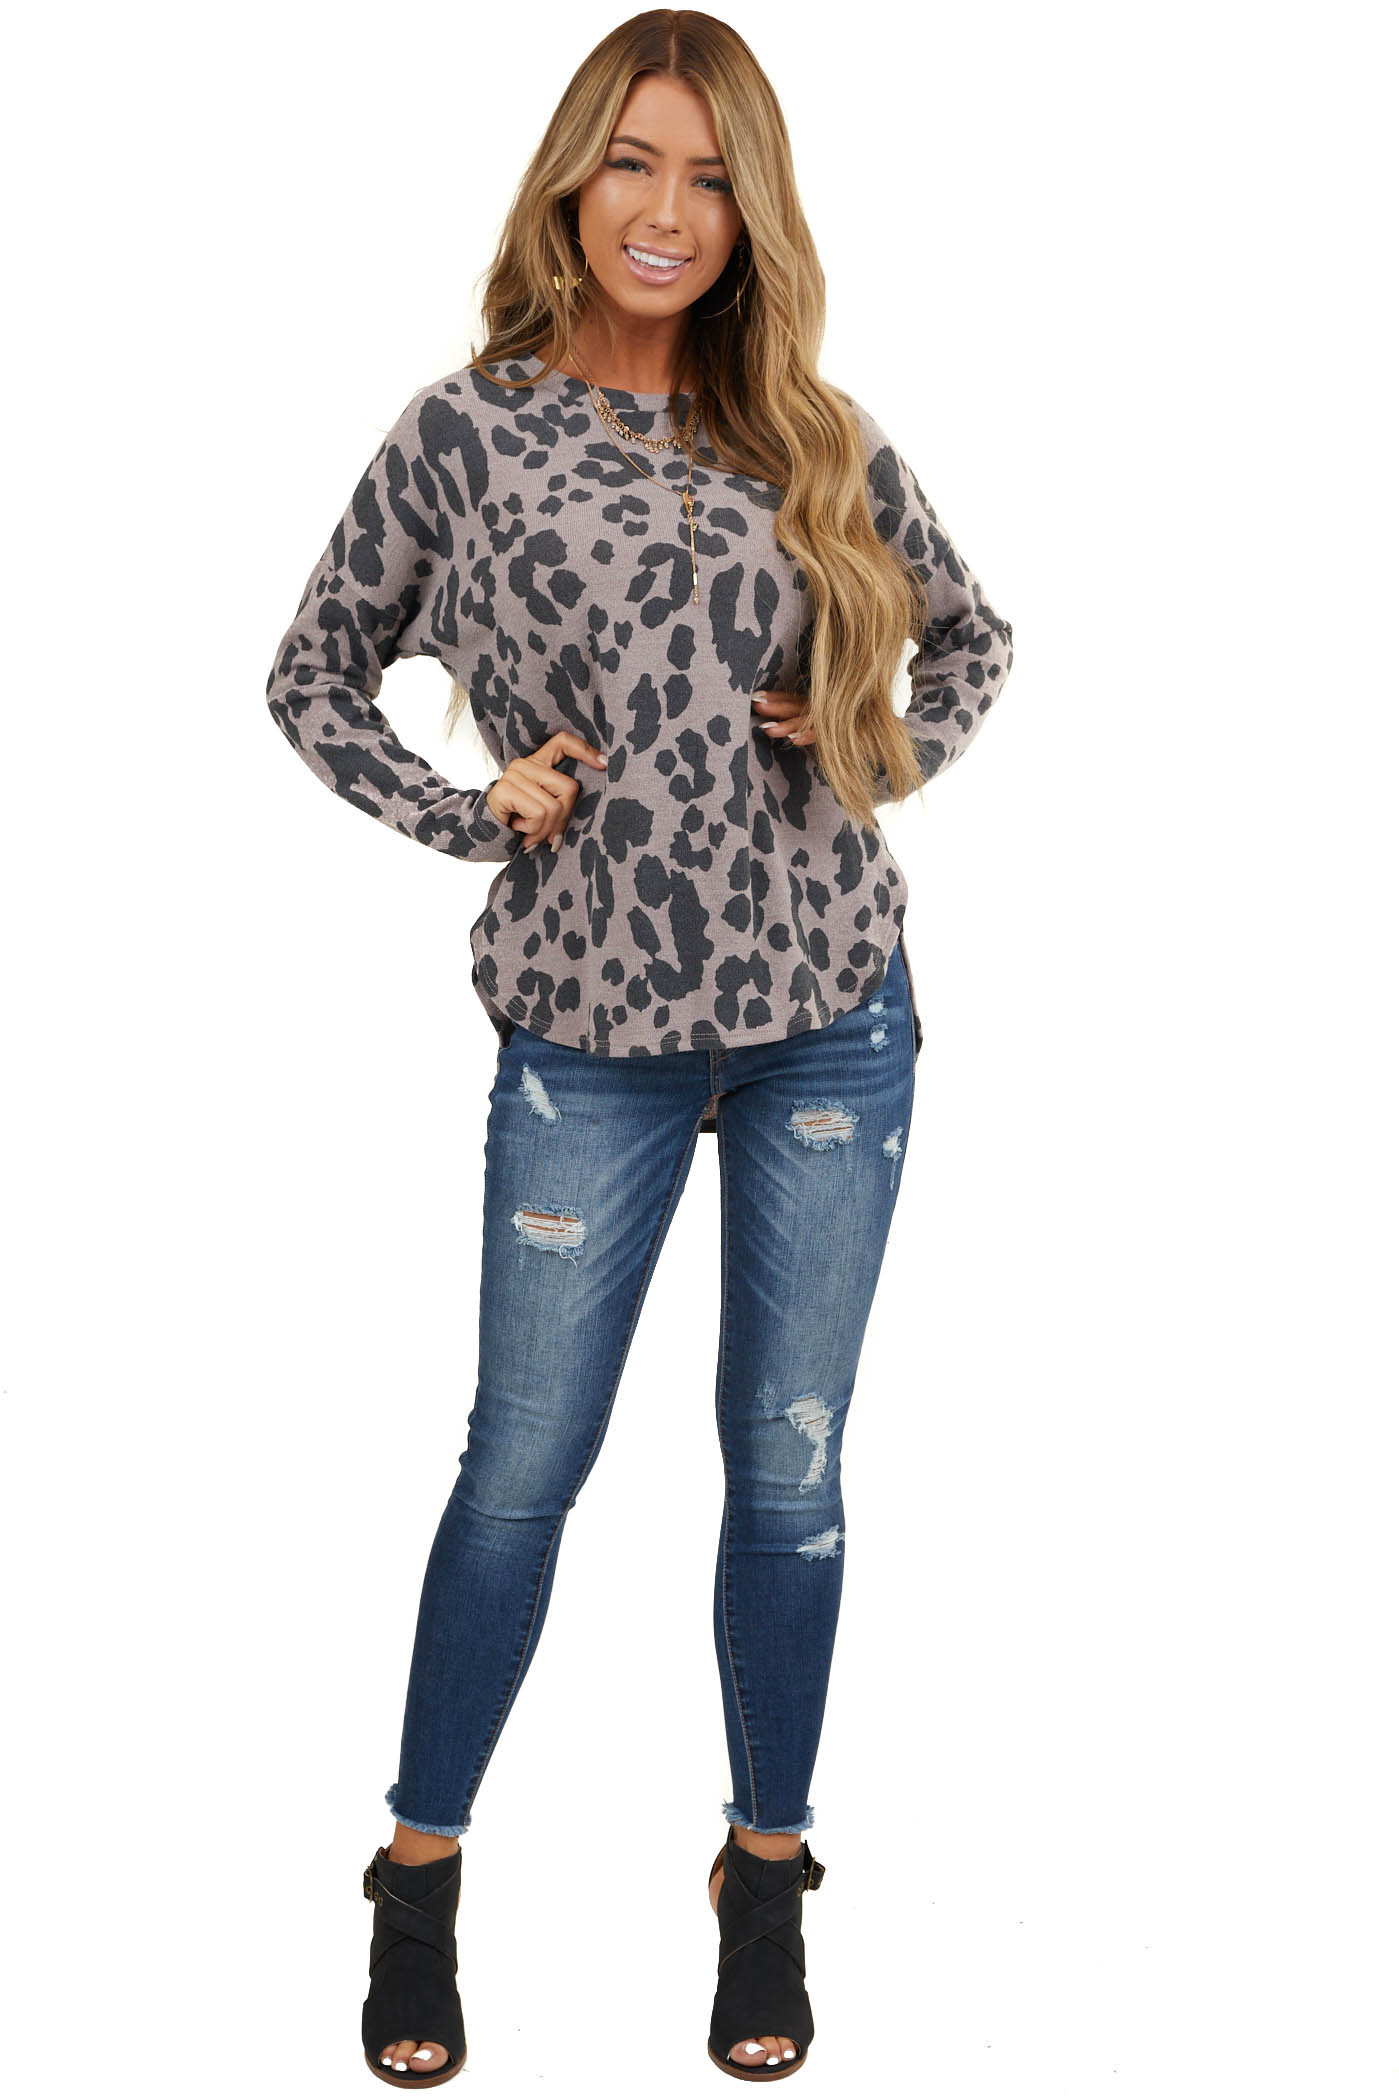 Taupe and Black Large Leopard Print Long Sleeve Knit Top